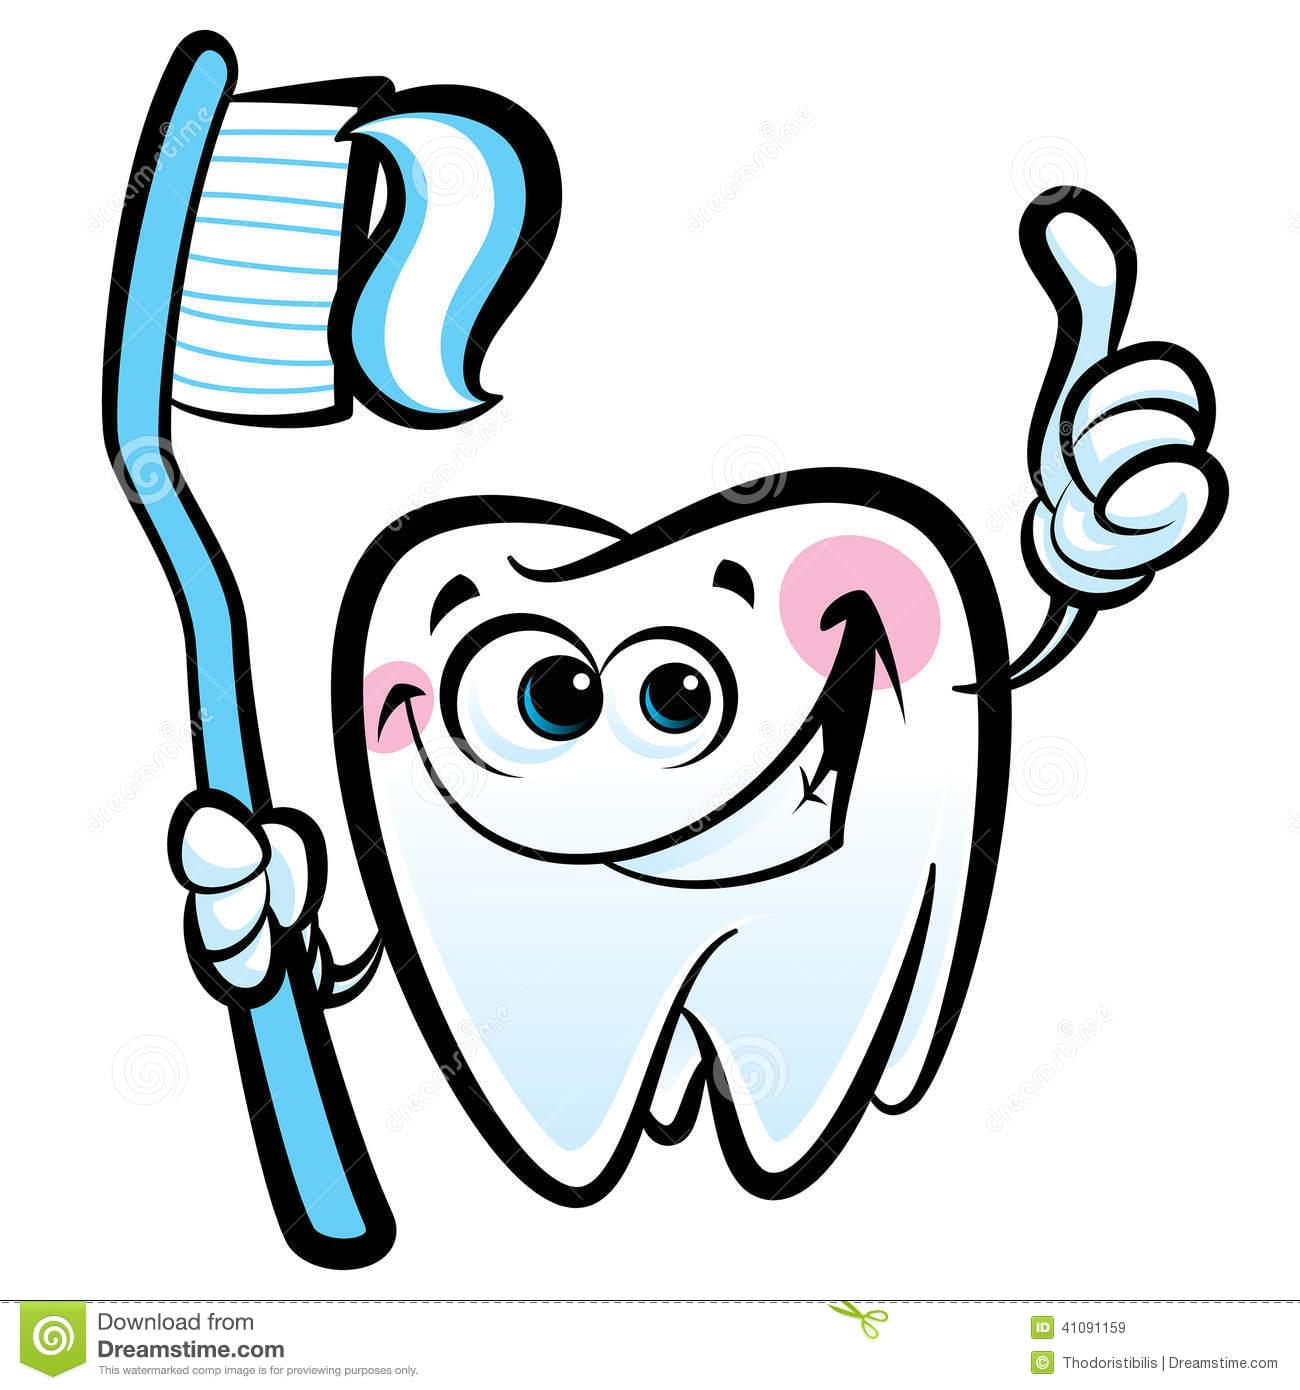 happy-cartoon-molar-tooth-character-holding-dental-toothbrush-wi-healthy-cute-making-thumb-up-gesture-smiling-happily-41091159